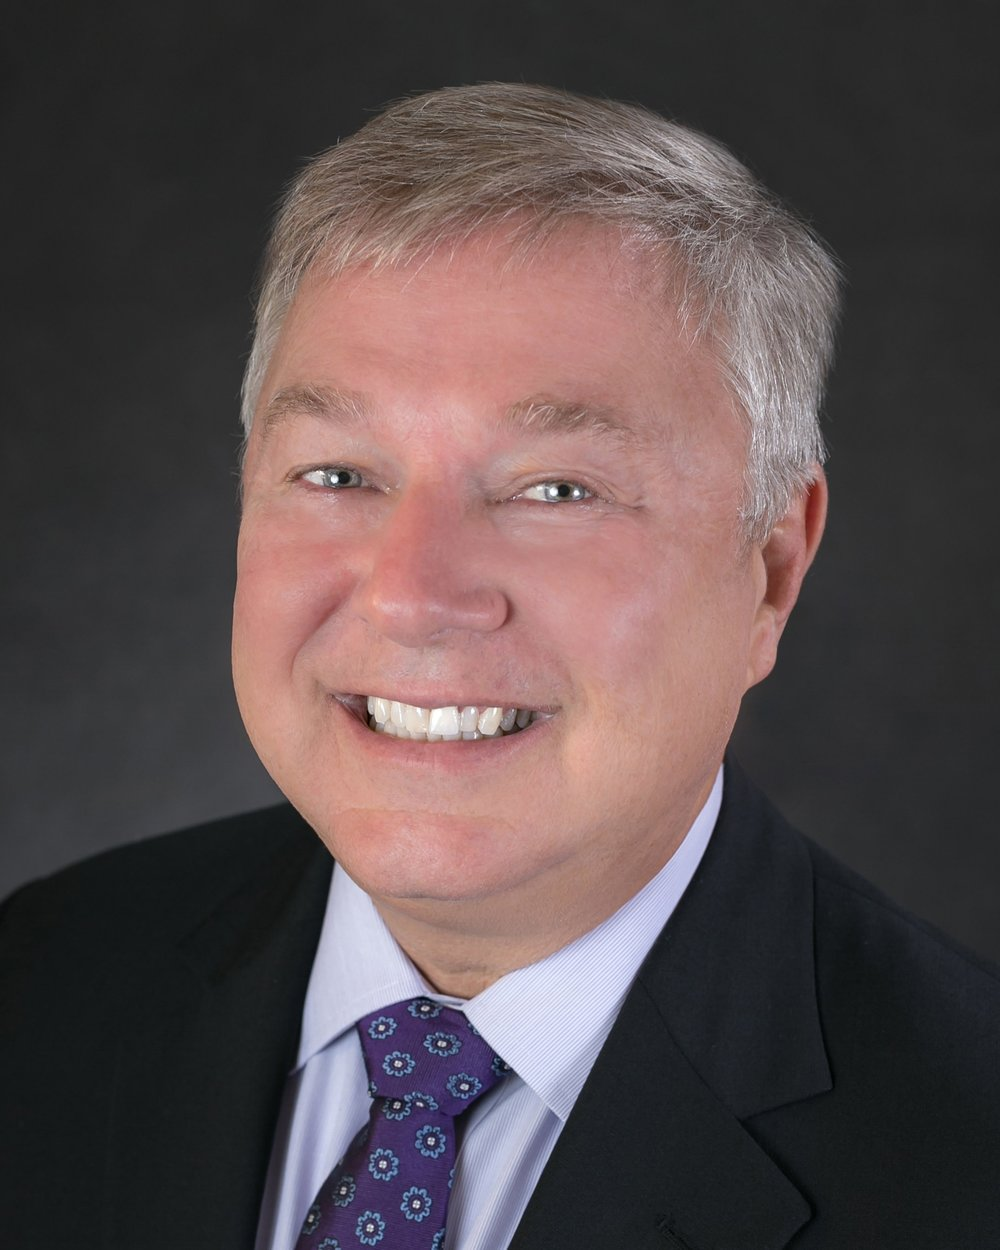 Edward Rickenbach Co-Managing Member Ed has 30 years experience in the title industry including years spent as the Vice President of Direct Operations in New Jersey for Fidelity National Title Insurance Company and as owner of an independent title insurance and settlement agency.